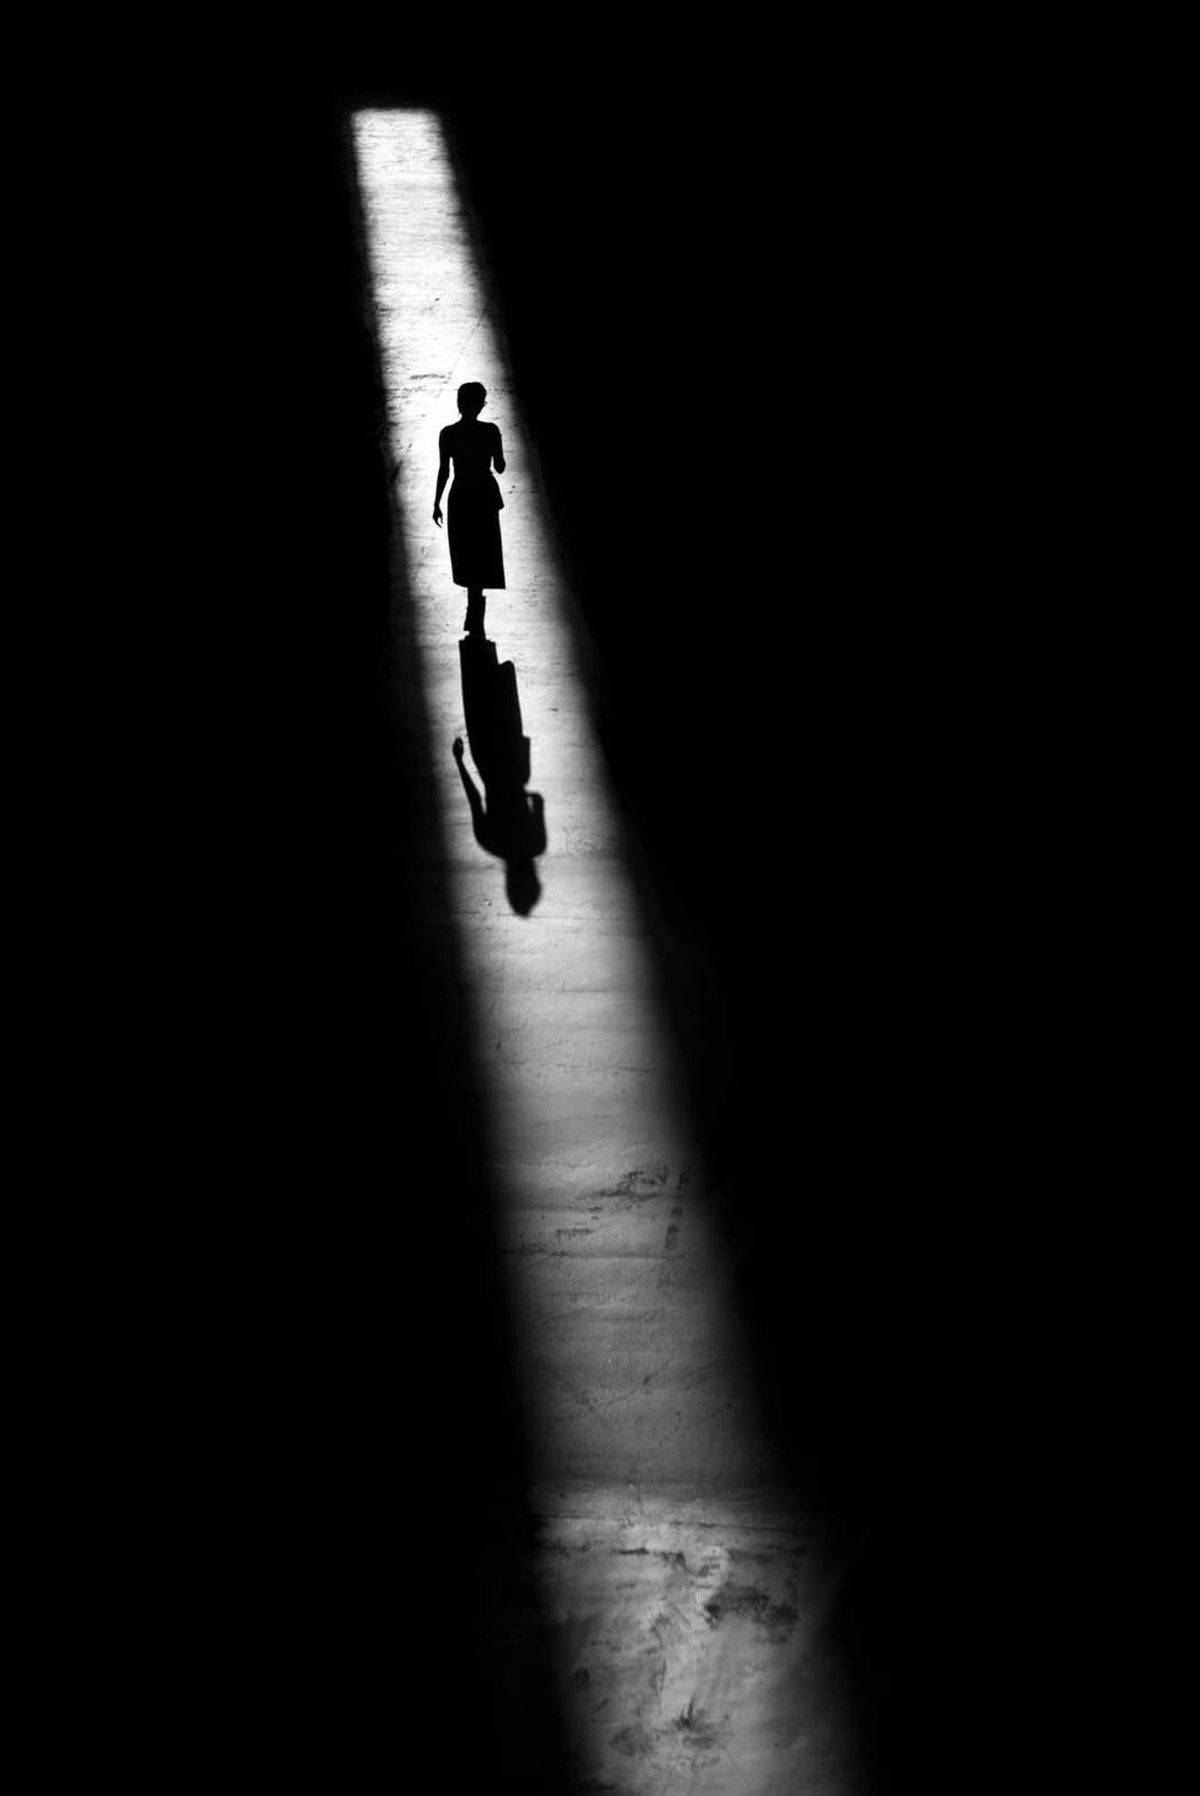 Impressive black and white photography by Alan Schaller | Photography | What's going on here anyway?